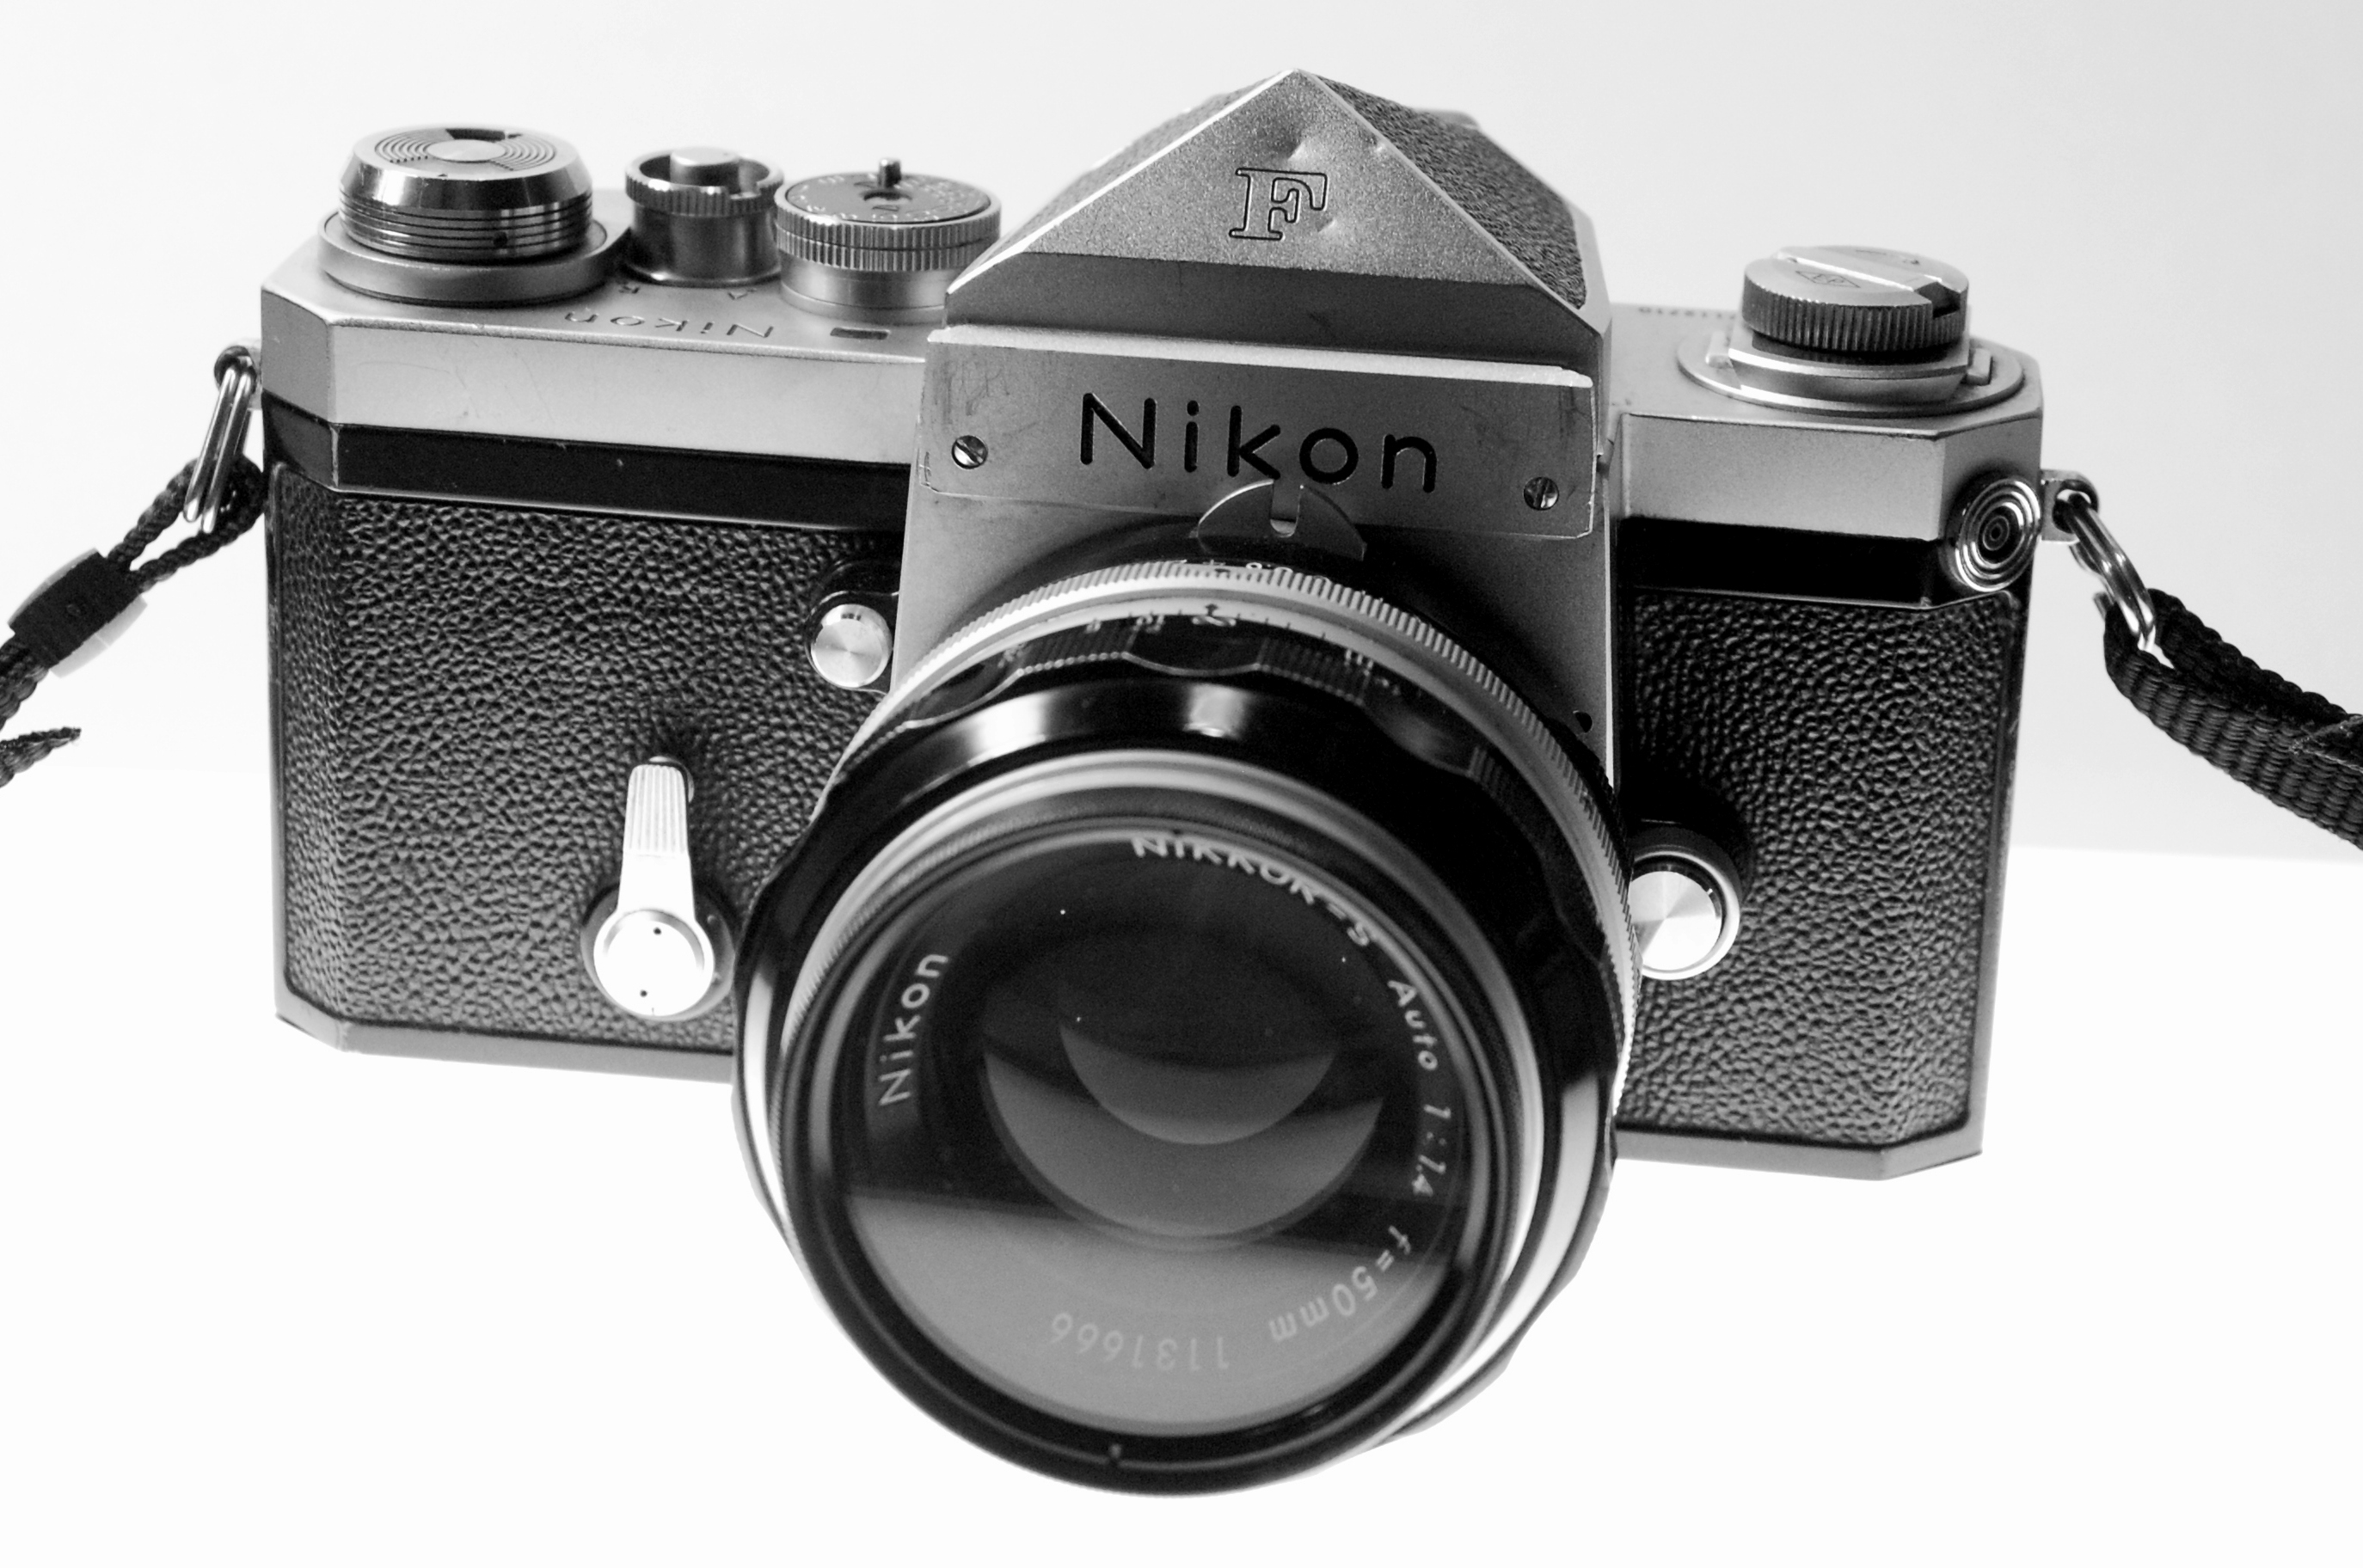 dating nikon f Major accessories for the fe include the nikon md-11, motor drive (automatic film advance up to 35 frames per second) superseded by the md-12 which had an automatic shutoff that the md-11 lacked, the nikon mf-12 databack (time or date stamping on the film), and the nikon speedlight sb-10 electronic flash (guide number 82/25.